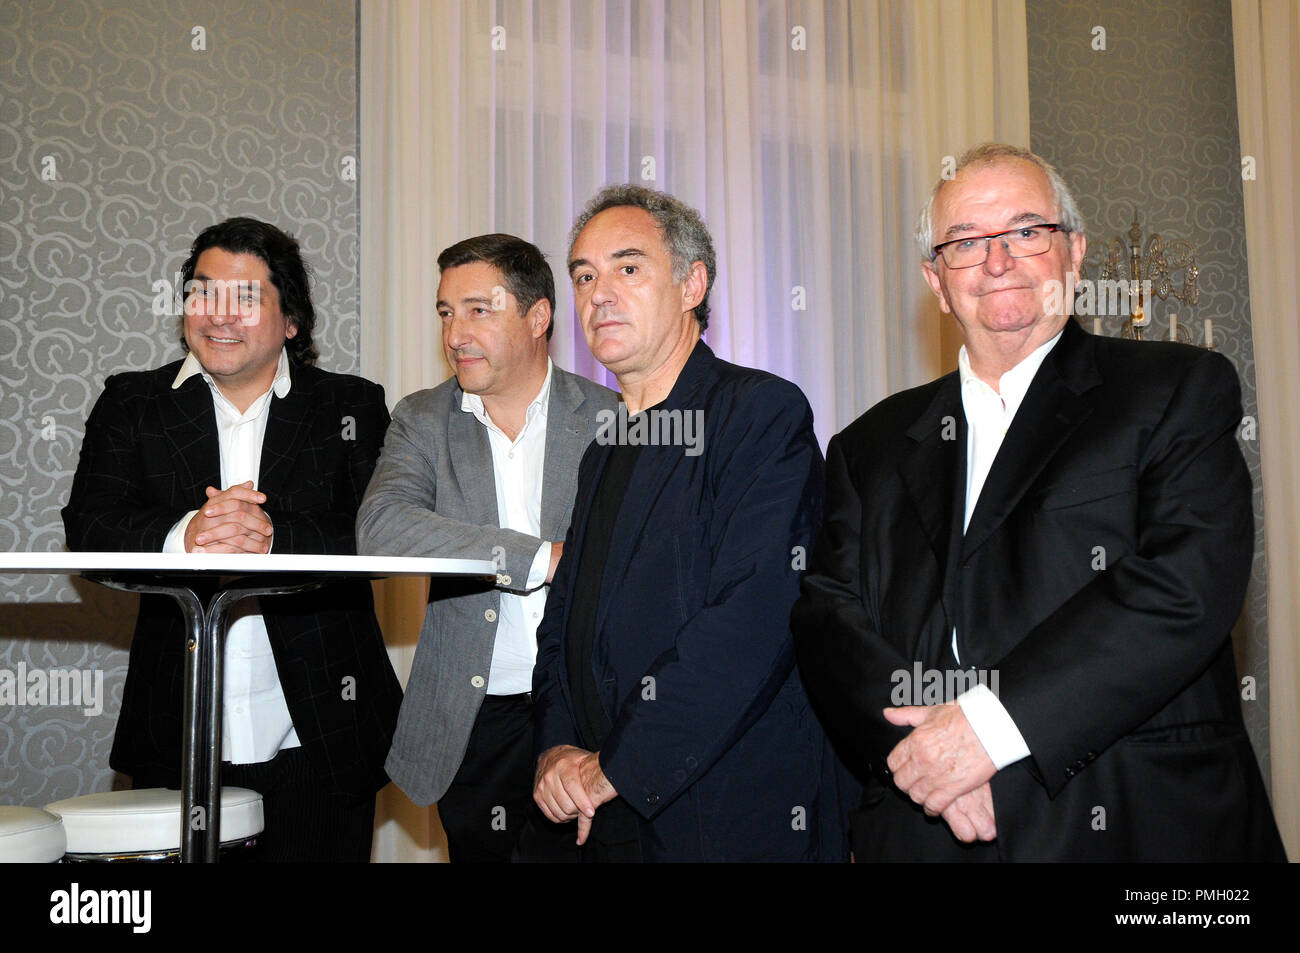 the chefs Ferran Adrià, Gastón Acurio, Juan Mari Arzak and Joan Roca after the presentation for the first time in Spain of the documentary 'Peru Knows - Stock Image